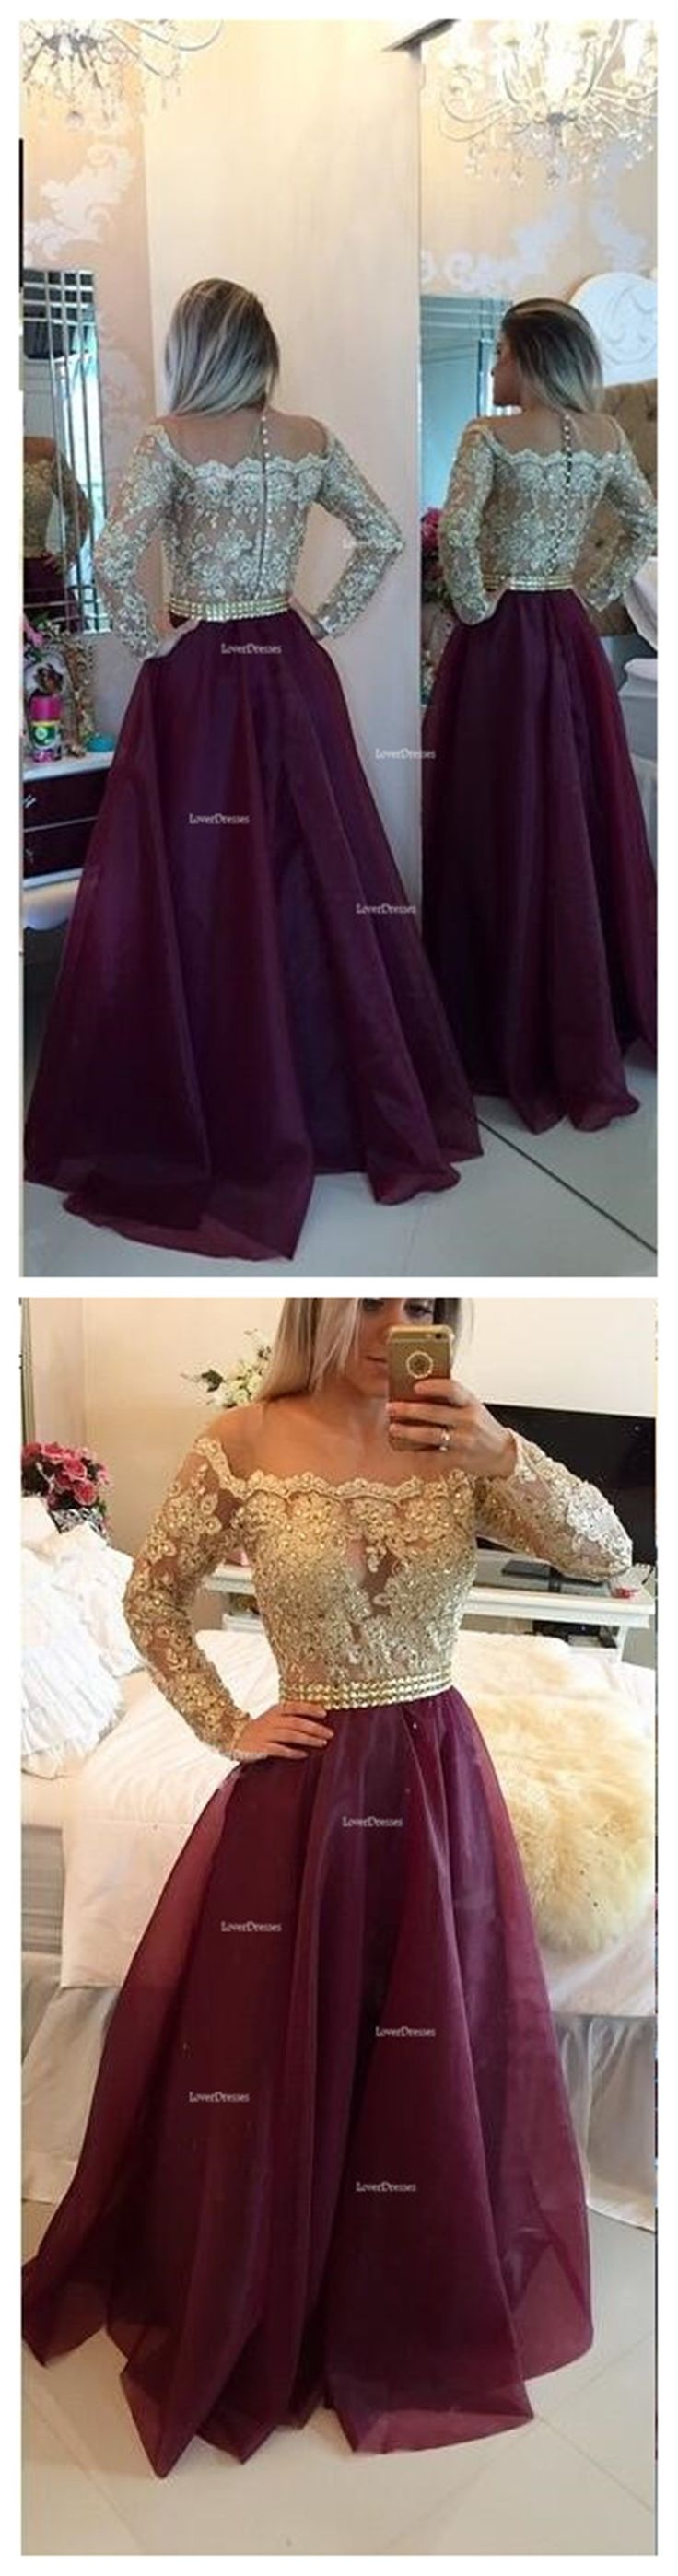 Long sleeve prom dress, A line prom dresses, Gold prom dresses, prom dresses 2016, cheap prom dress, 15128